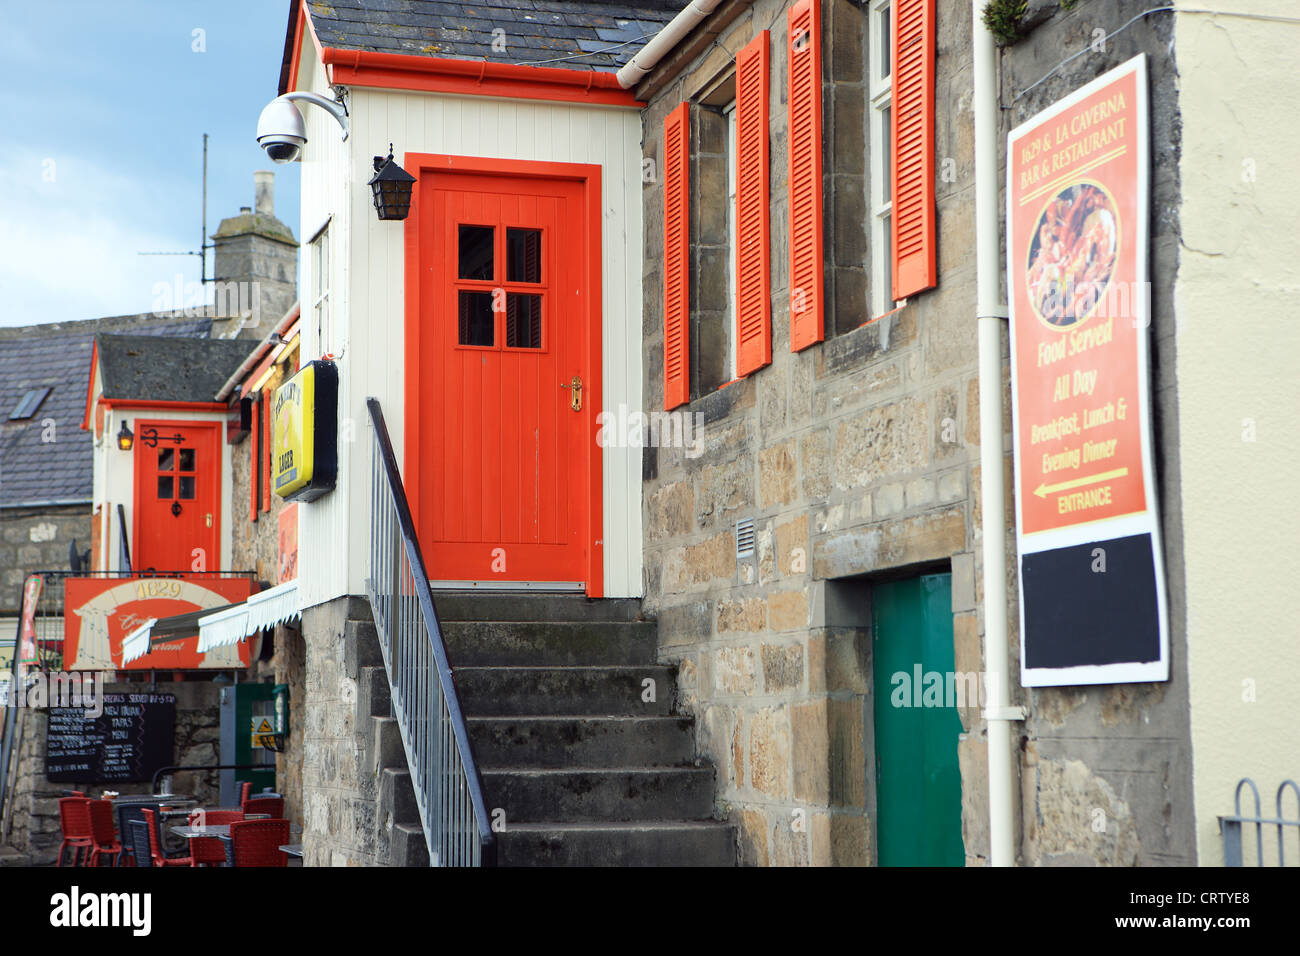 Bright coloured doors and windows of the 1629 restaurant in Lossiemouth in Scotland - Stock Image